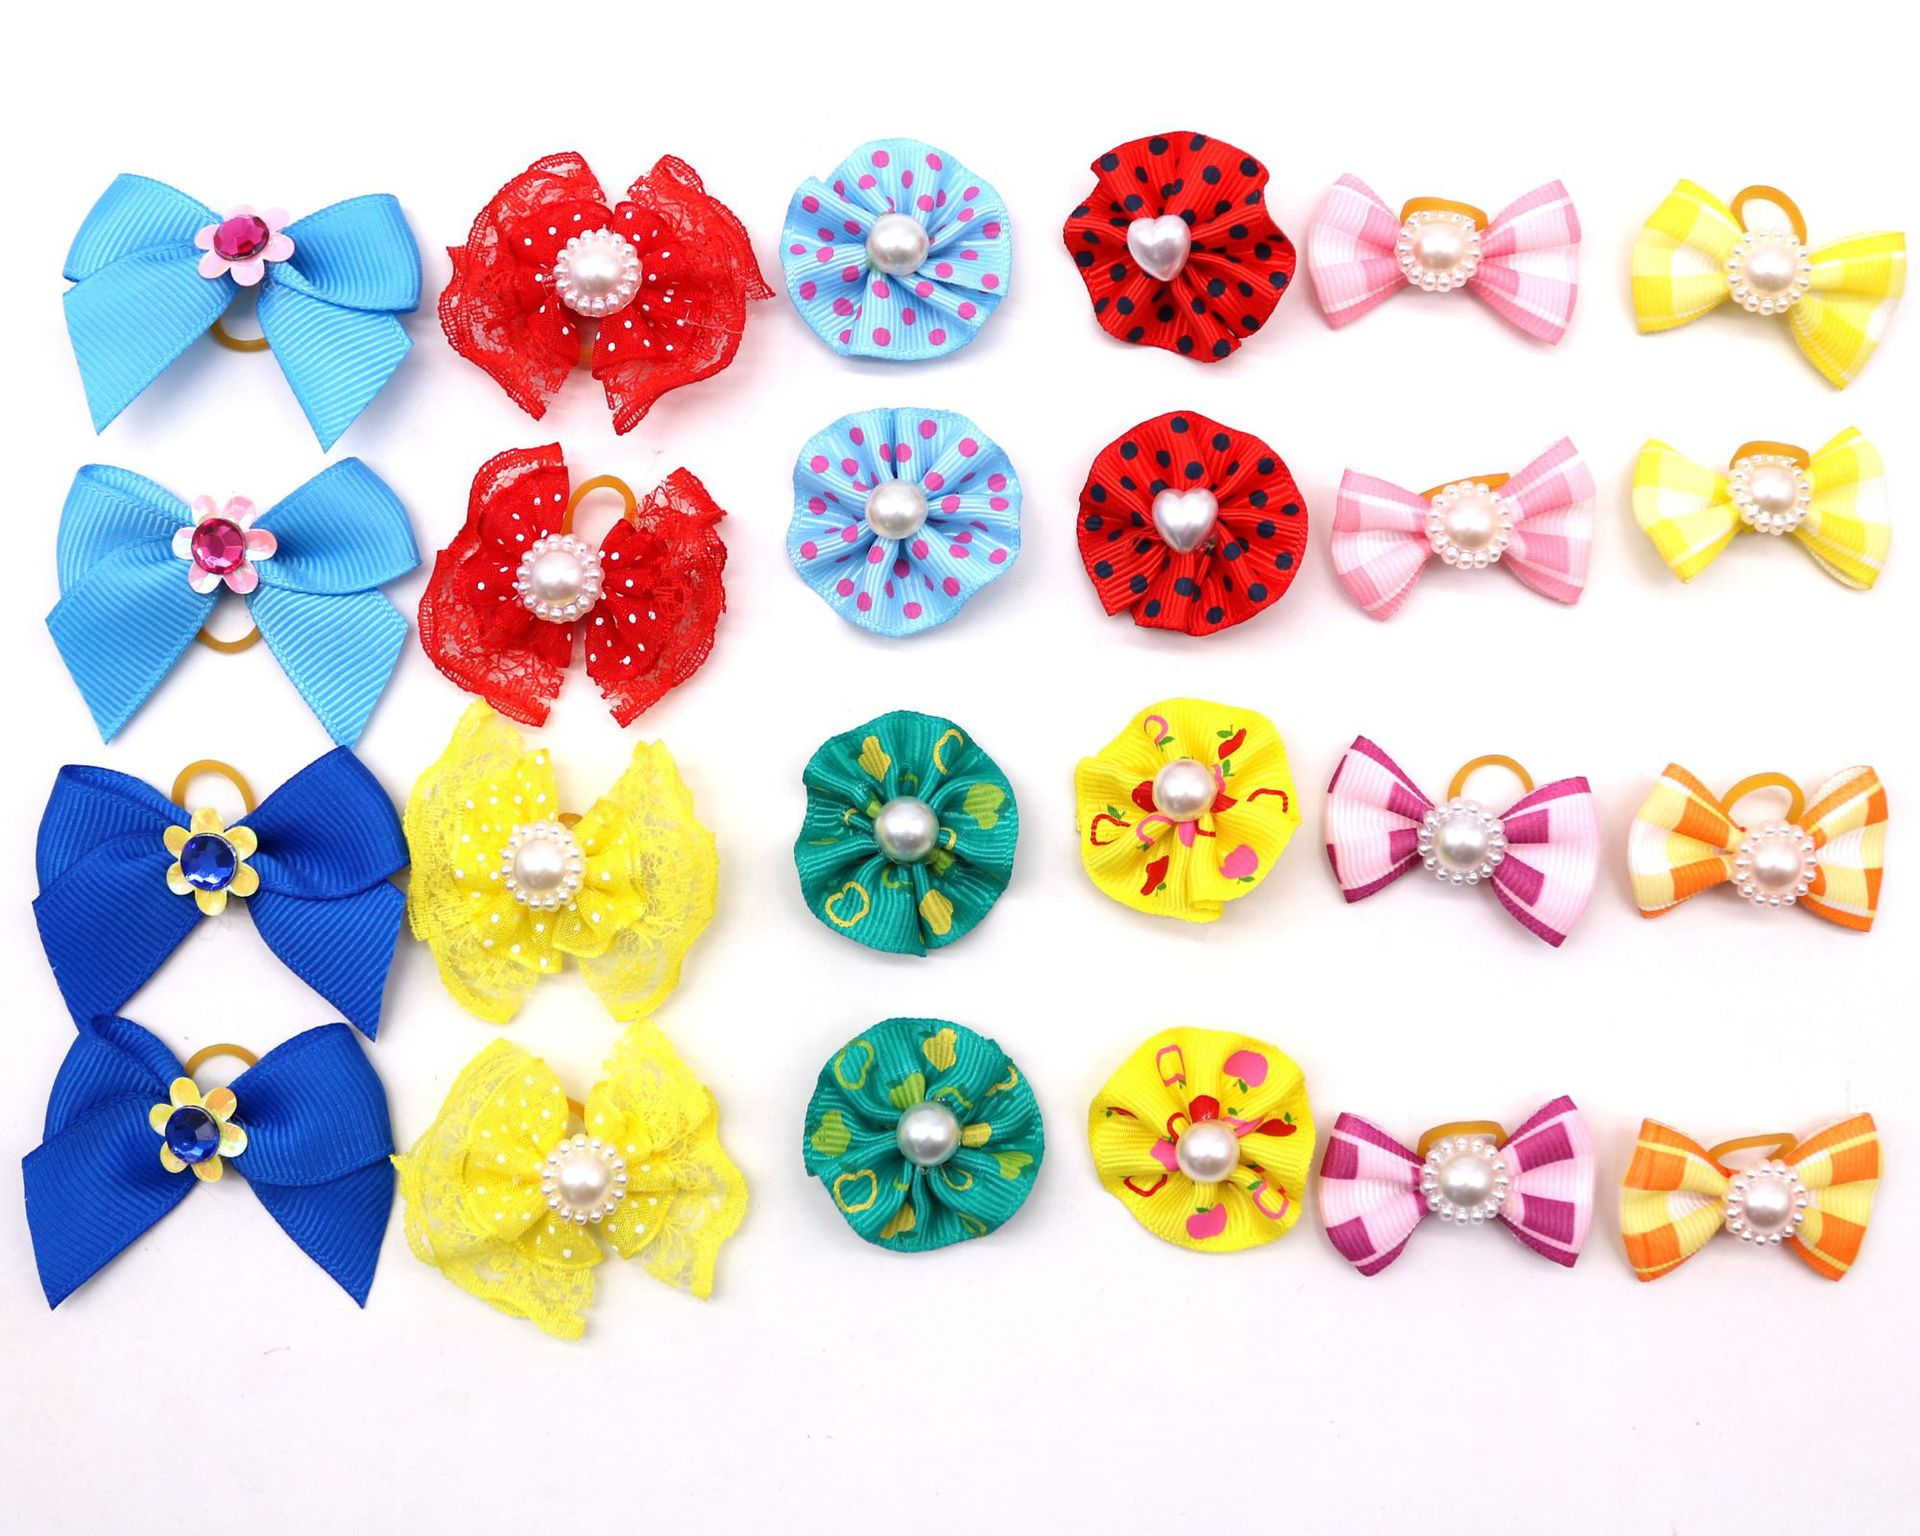 30/50/pcs Dog Hair Bows Puppy Yorkshirk Small Dogs Hair Accessories Grooming Bows Rubber Bands Dog Bows Pet Supplies